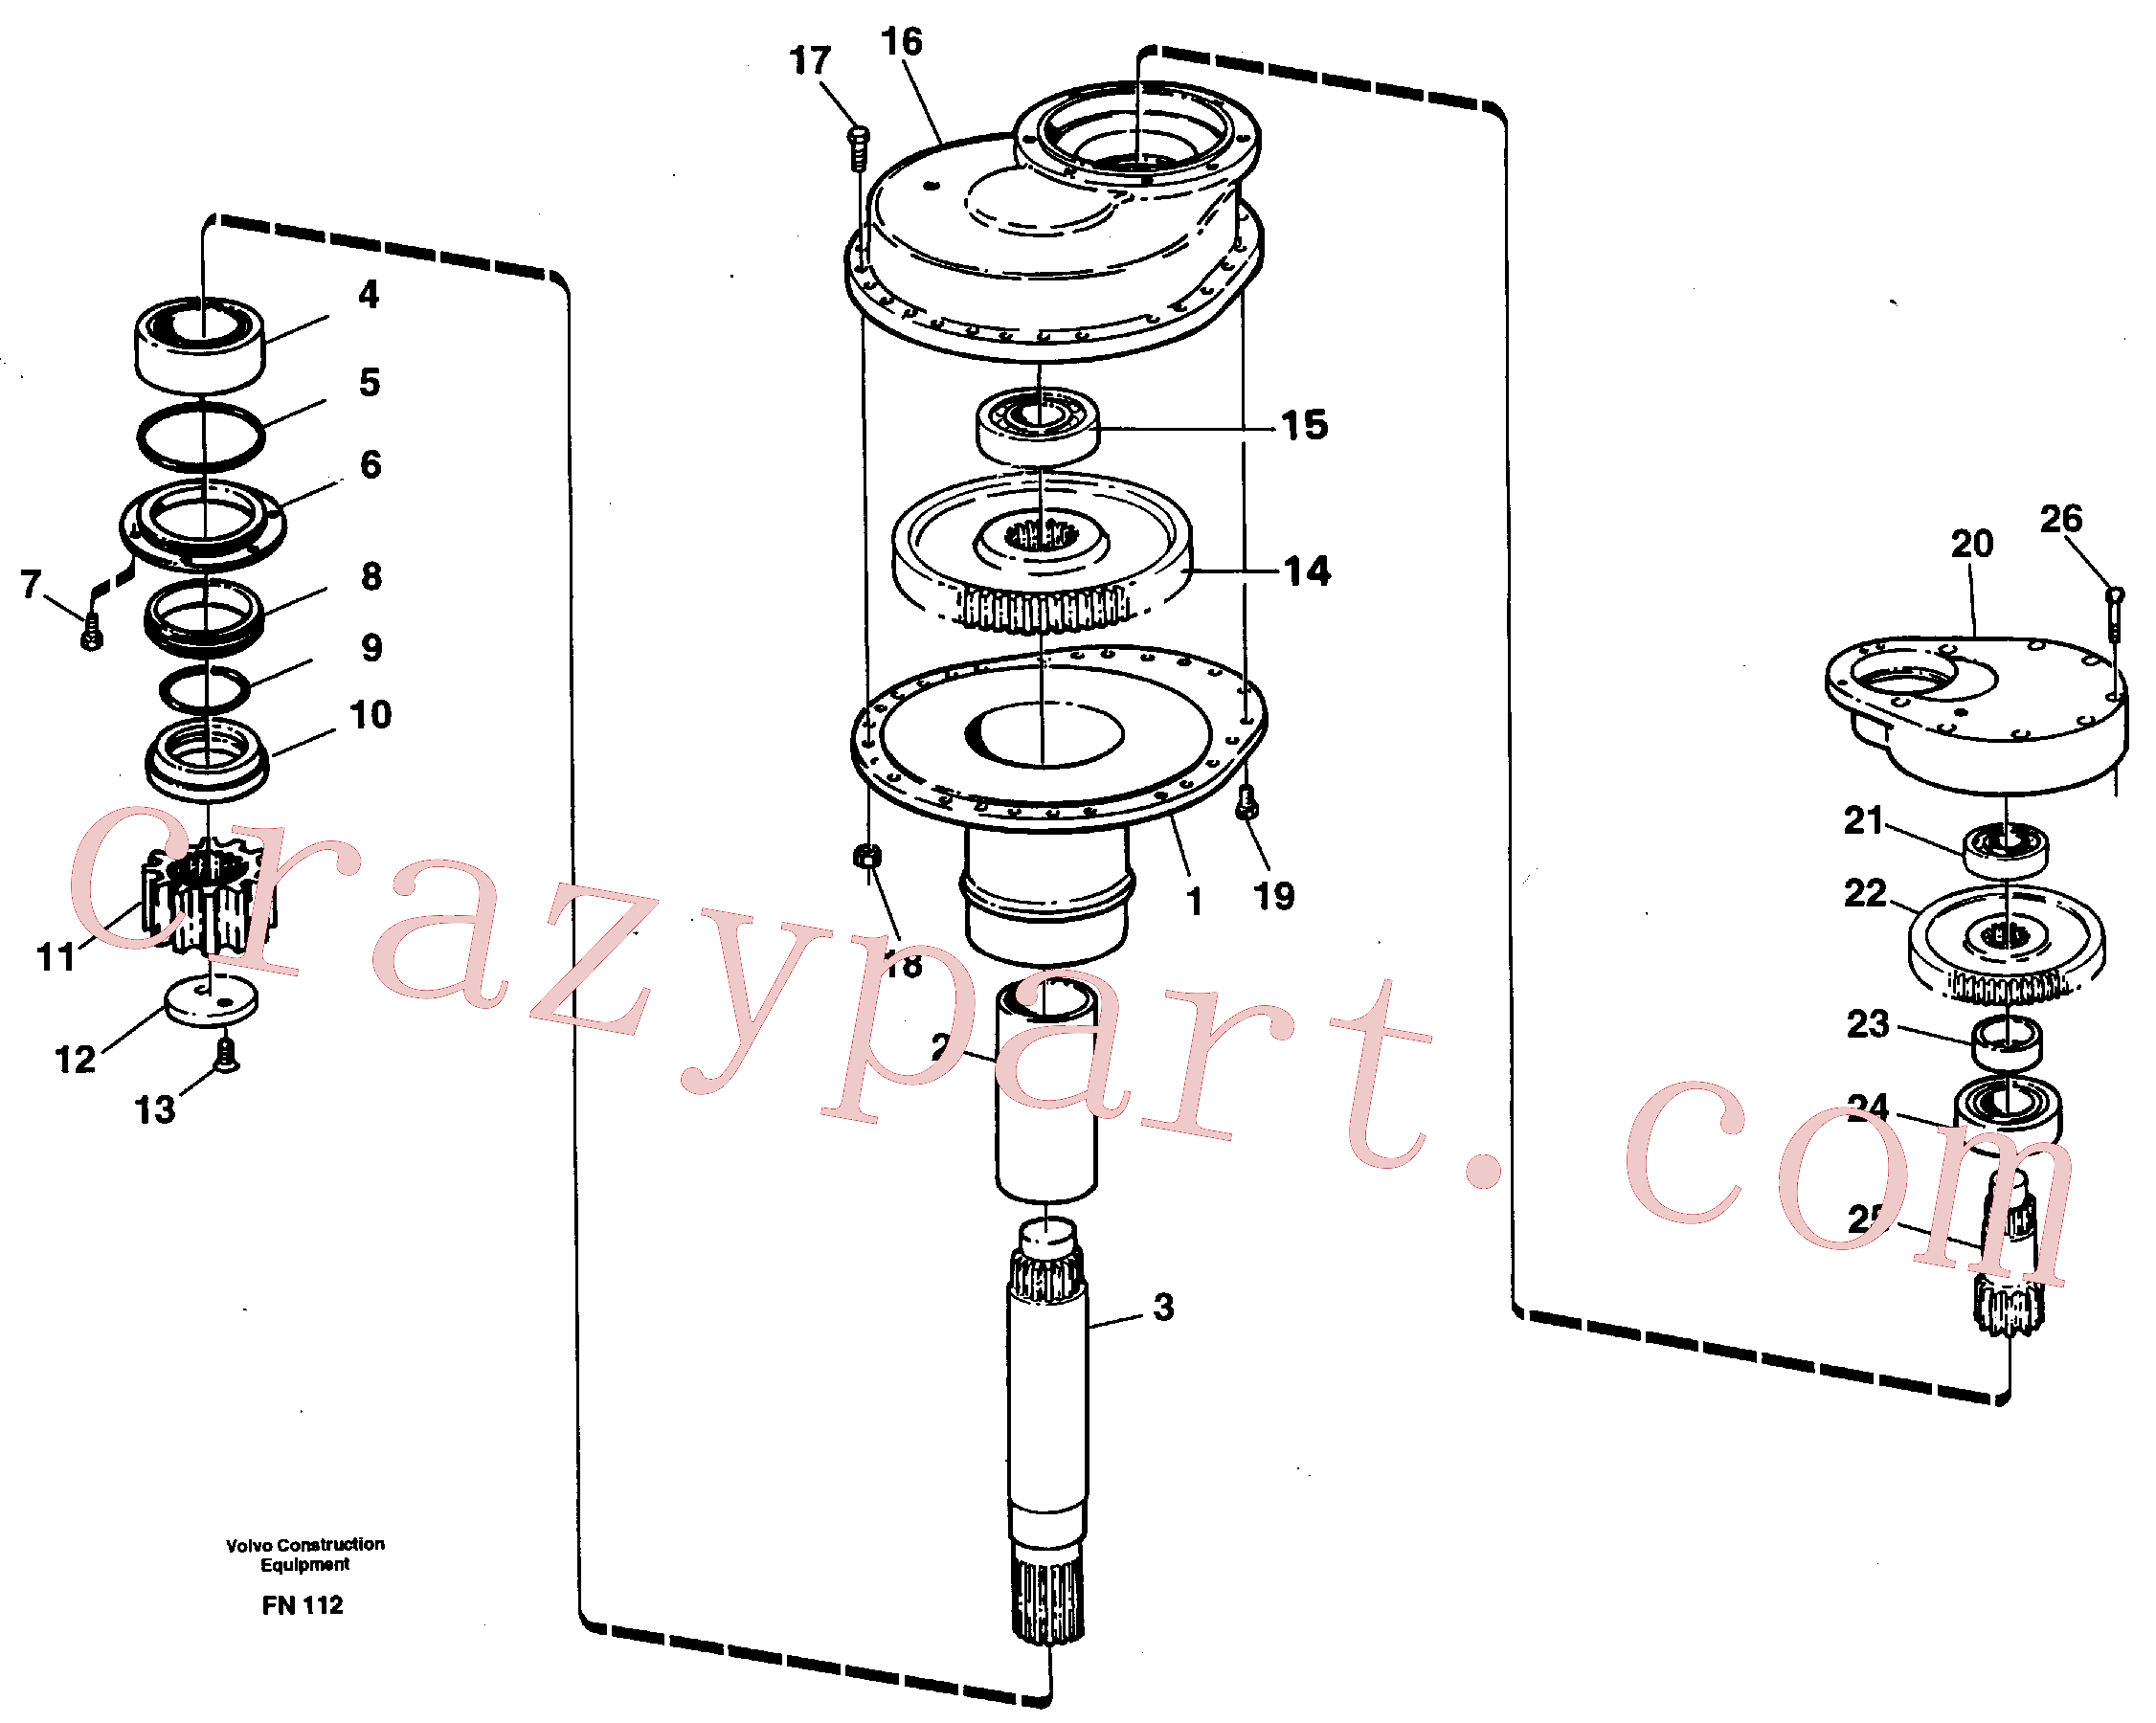 VOE14048756 for Volvo Swing gearbox(FN112 assembly)